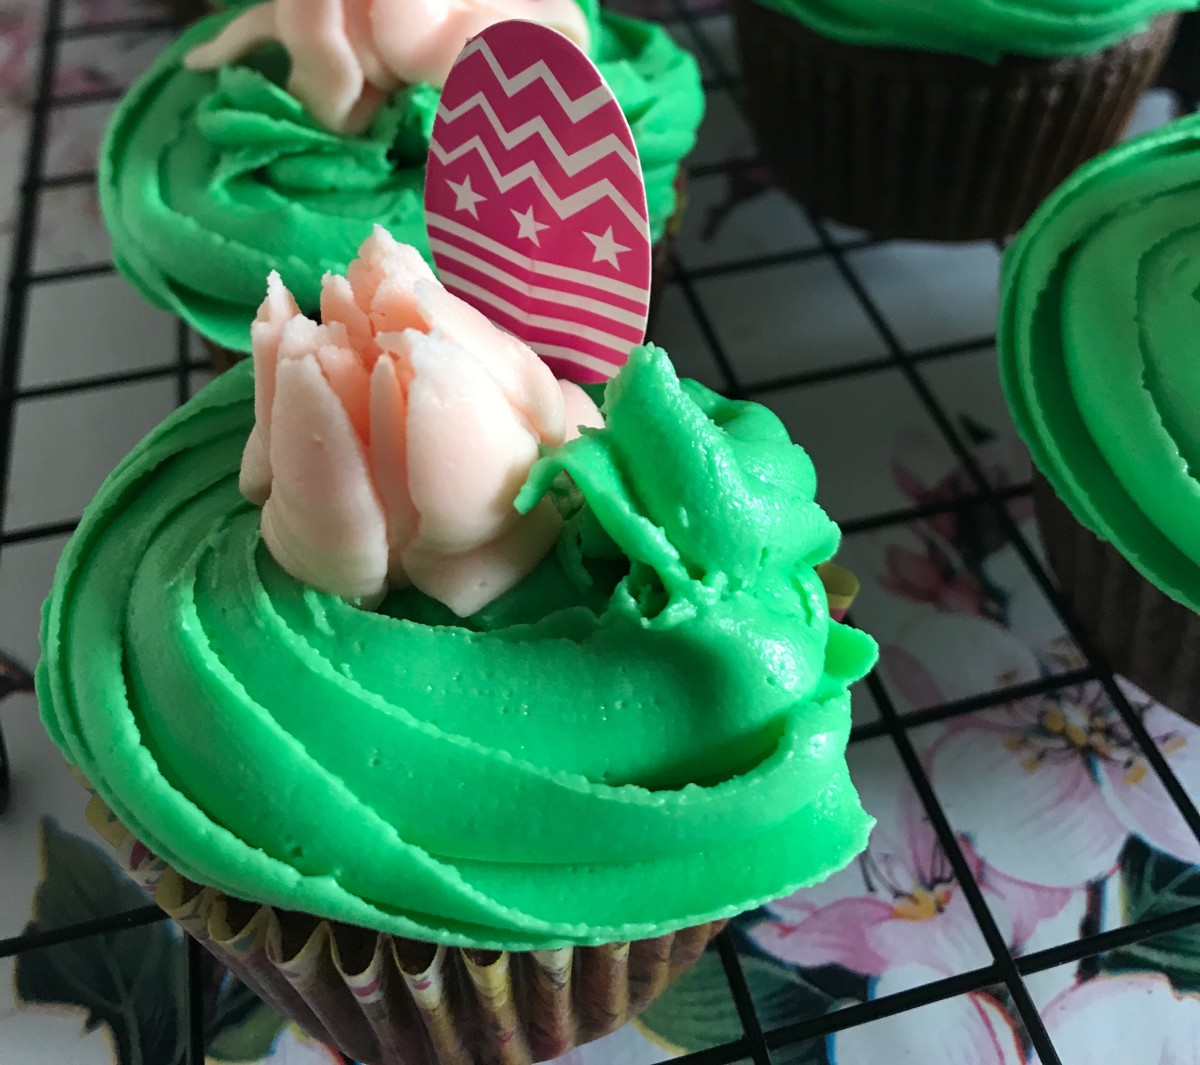 Decorated with green frosting swirl, peach flower and Easter Egg cake pick.